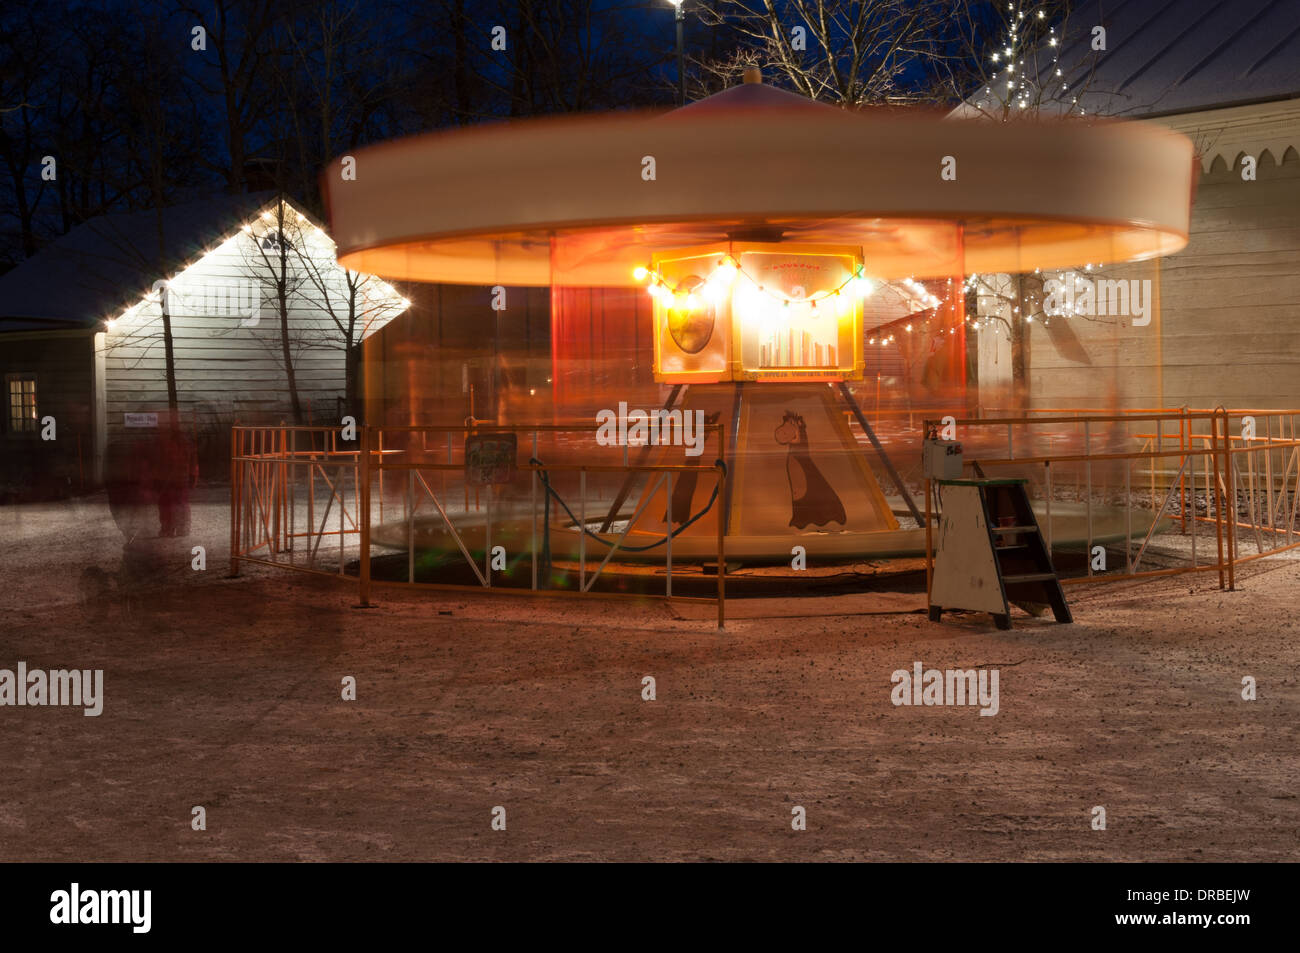 A very old carousel at Tallipiha in Tampere Finland - Stock Image